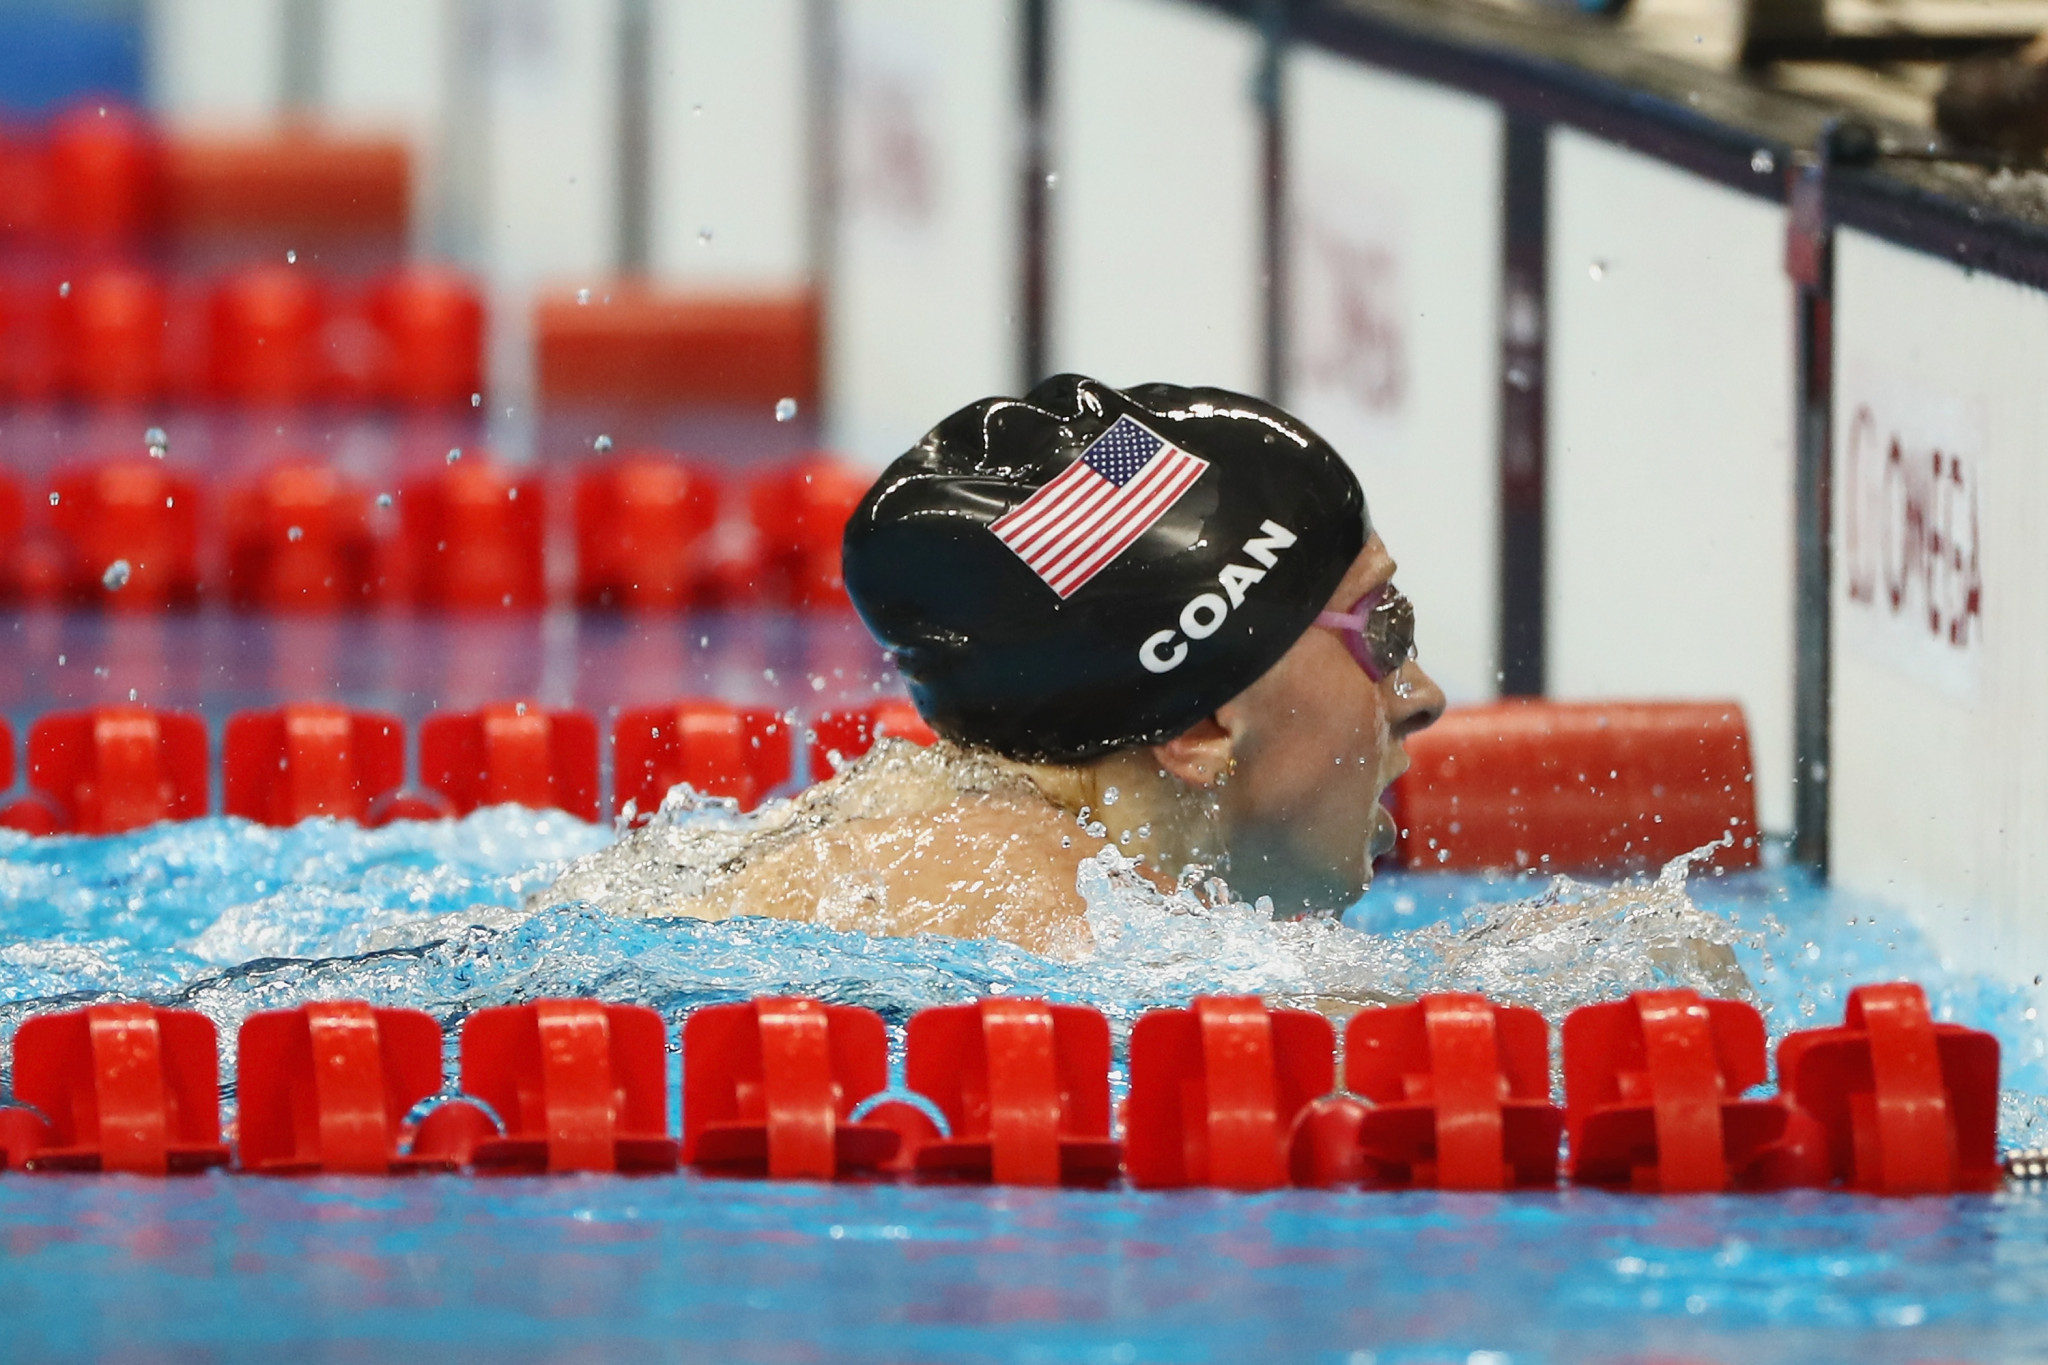 World Para Swimming World Series in Indianapolis ends with another five gold medals for US